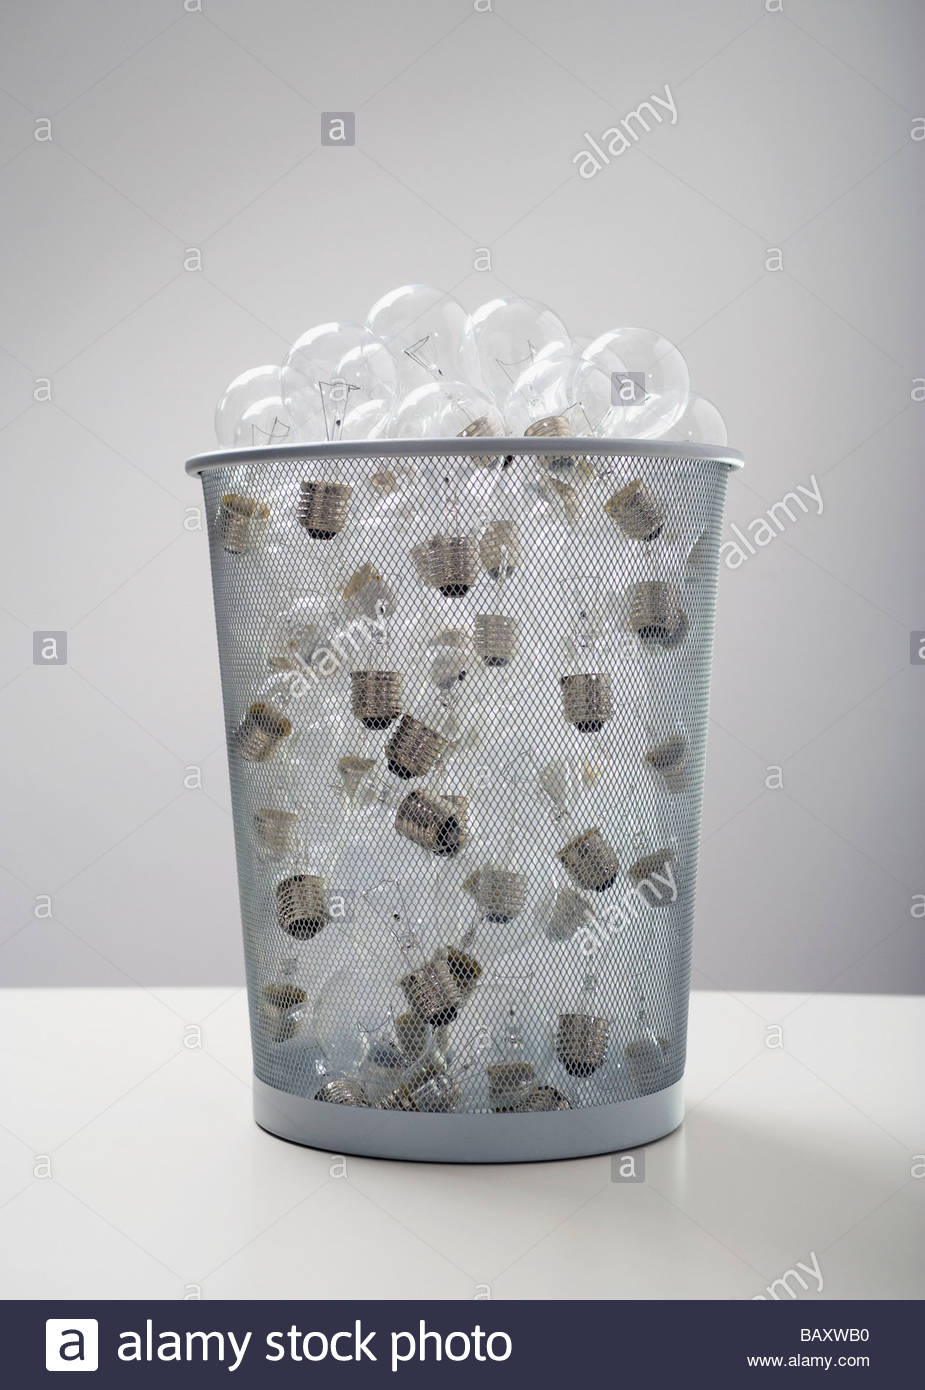 Wastebasket full of old-fashioned light bulbs - Stock Image